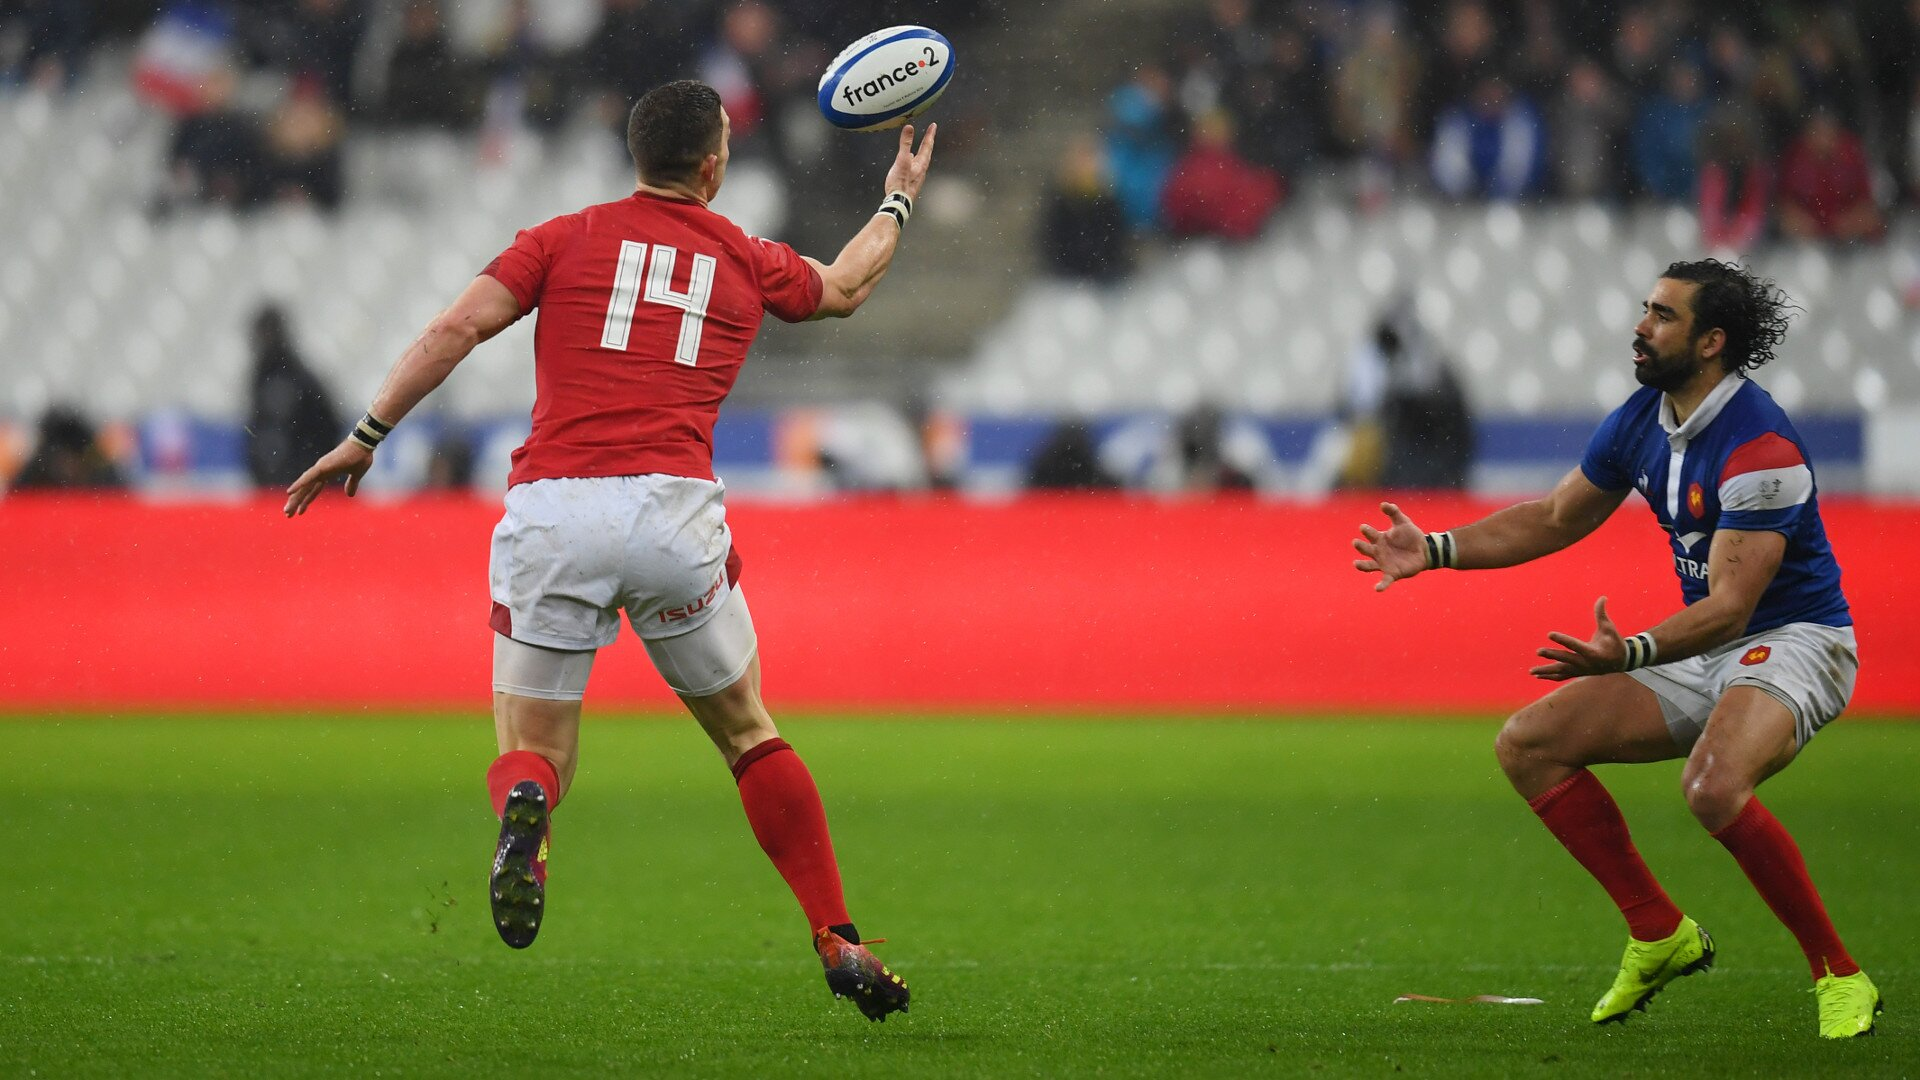 Match Report - Wales stage remarkable comeback in rollercoast Six Nations opener